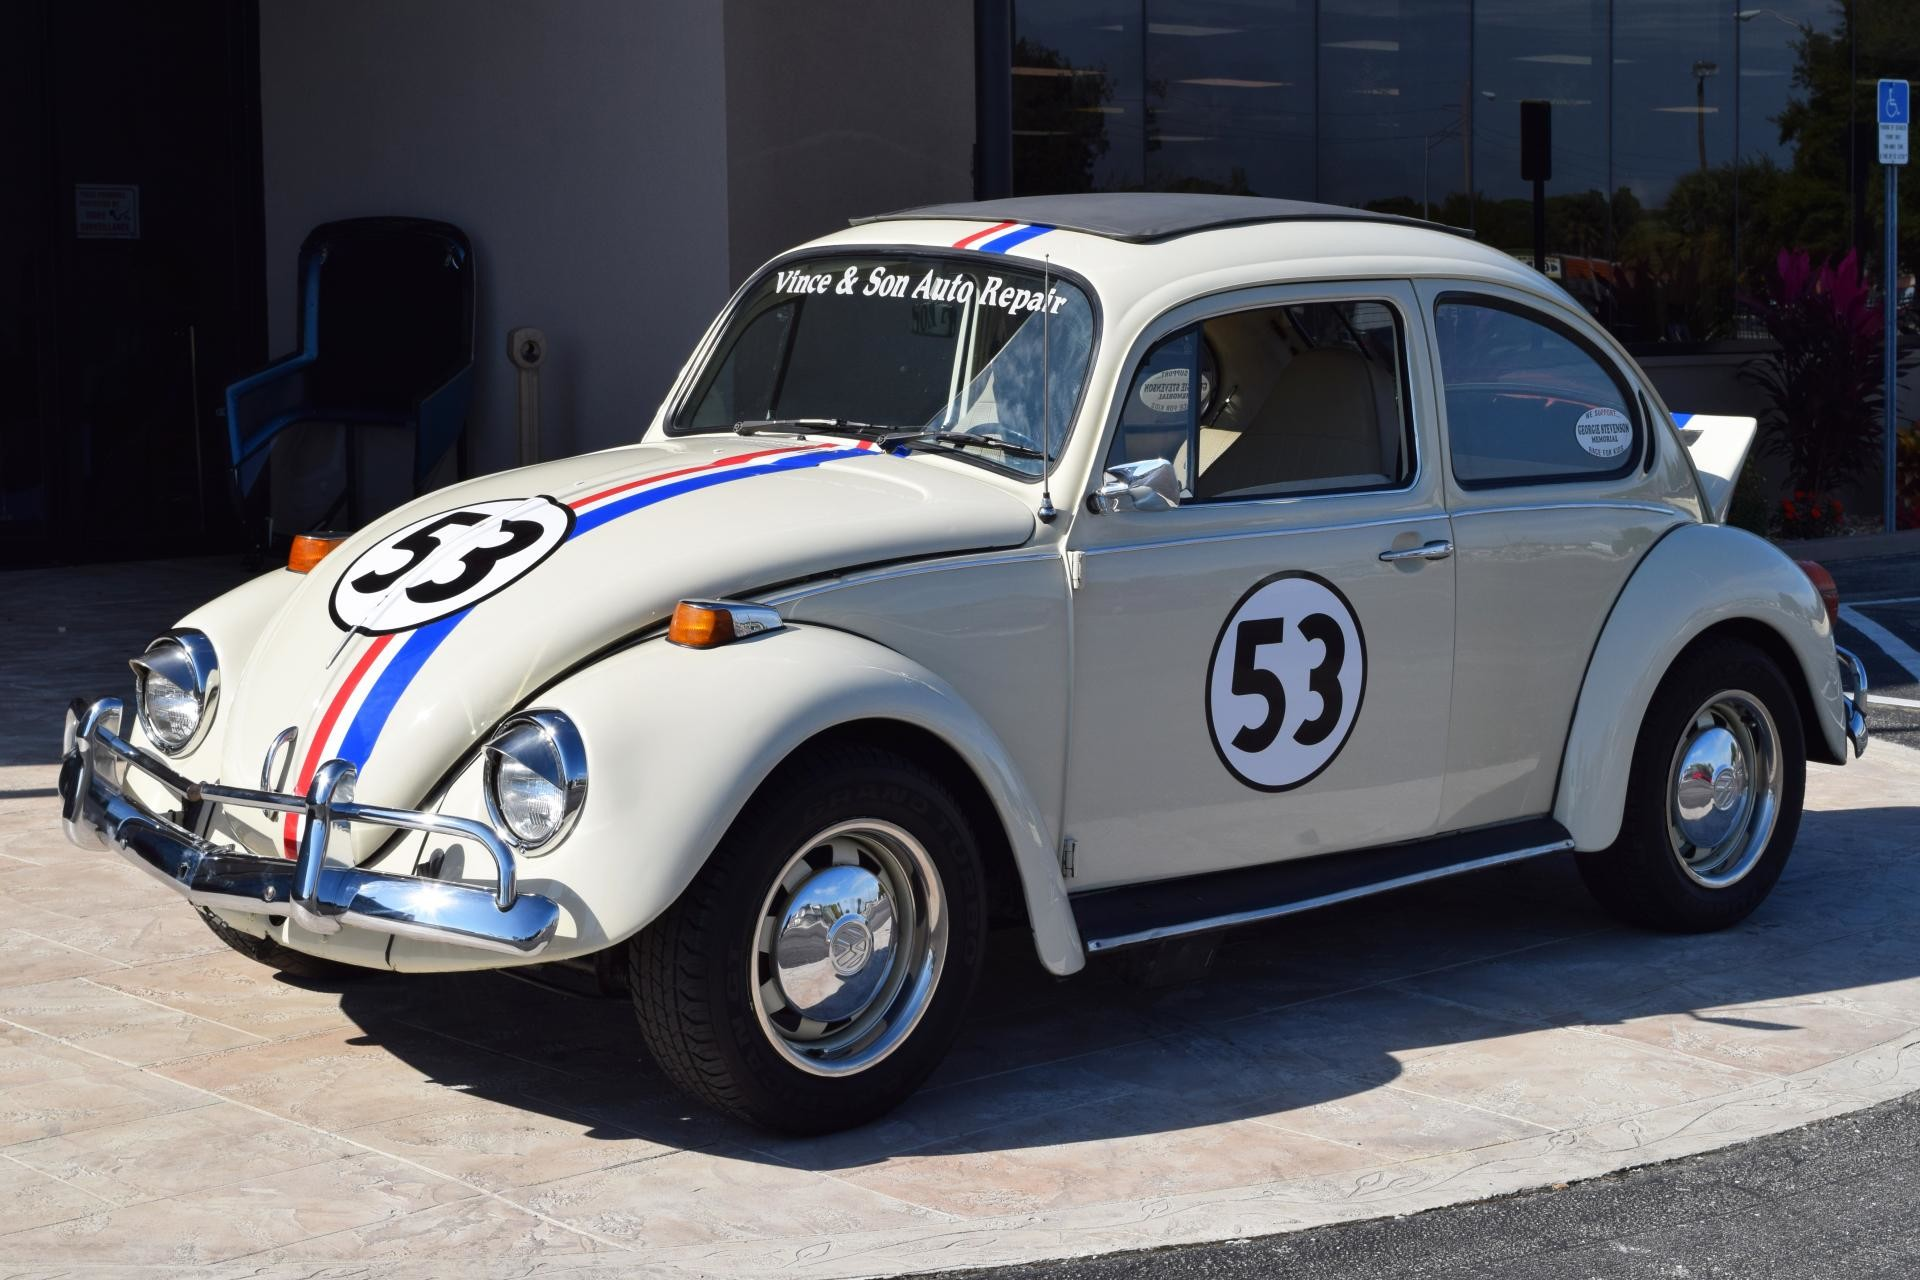 Res: 1920x1280, Used 1973 Z Movie CAR Herbie 1 Beetle Moving Parts | Venice, FL